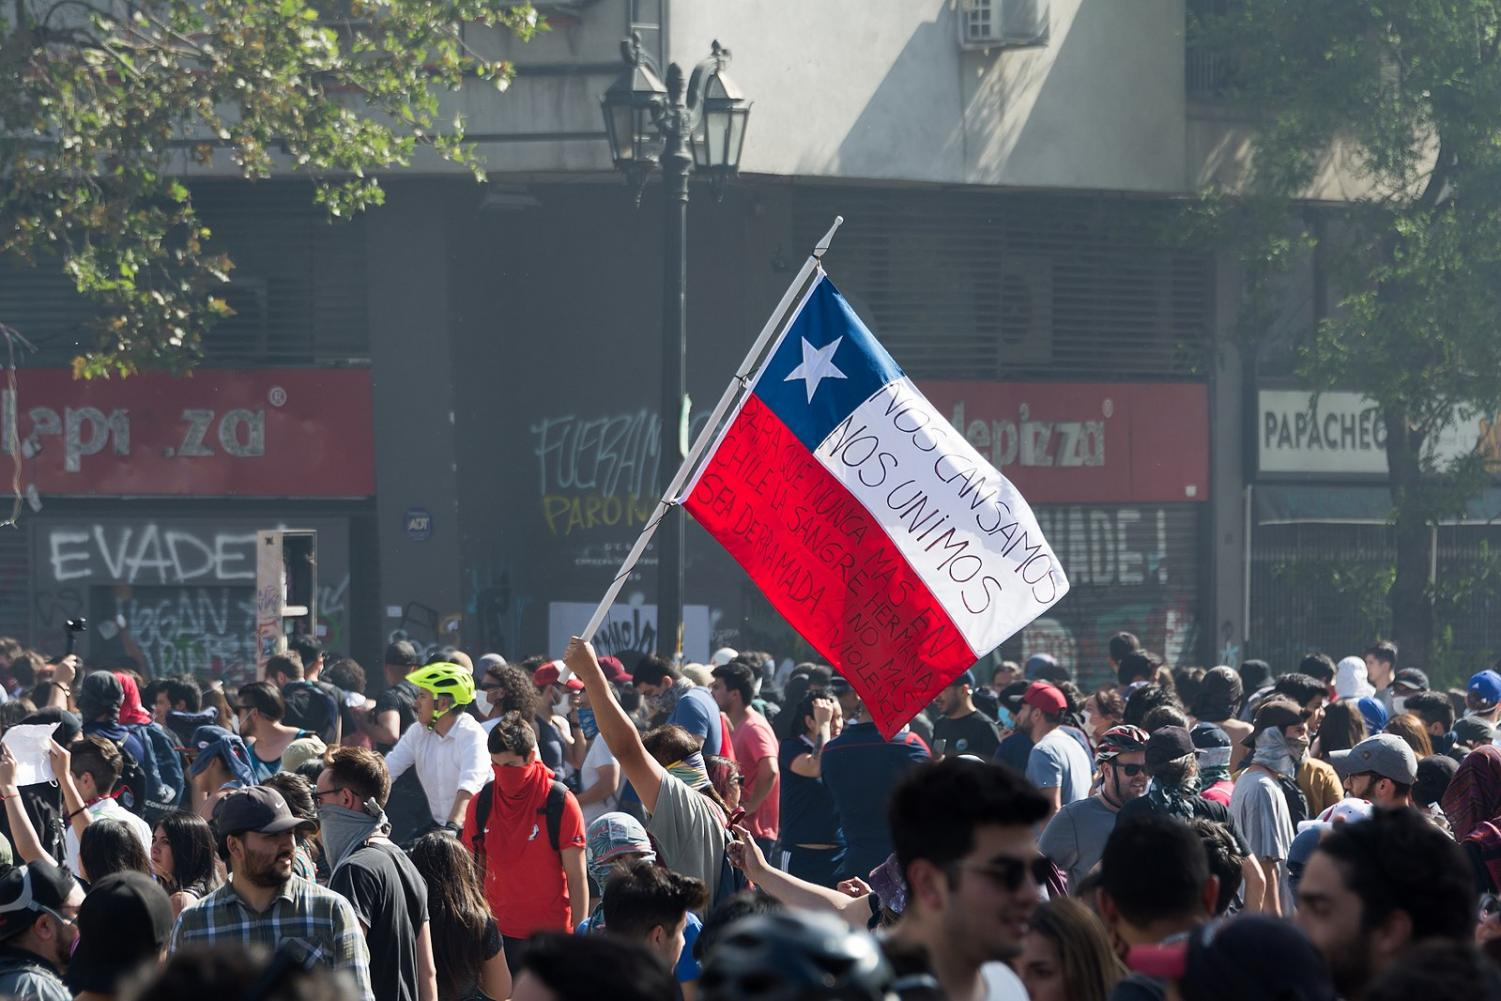 Protestors demonstrate in the Plaza Baquedano in Santiago, Chile.